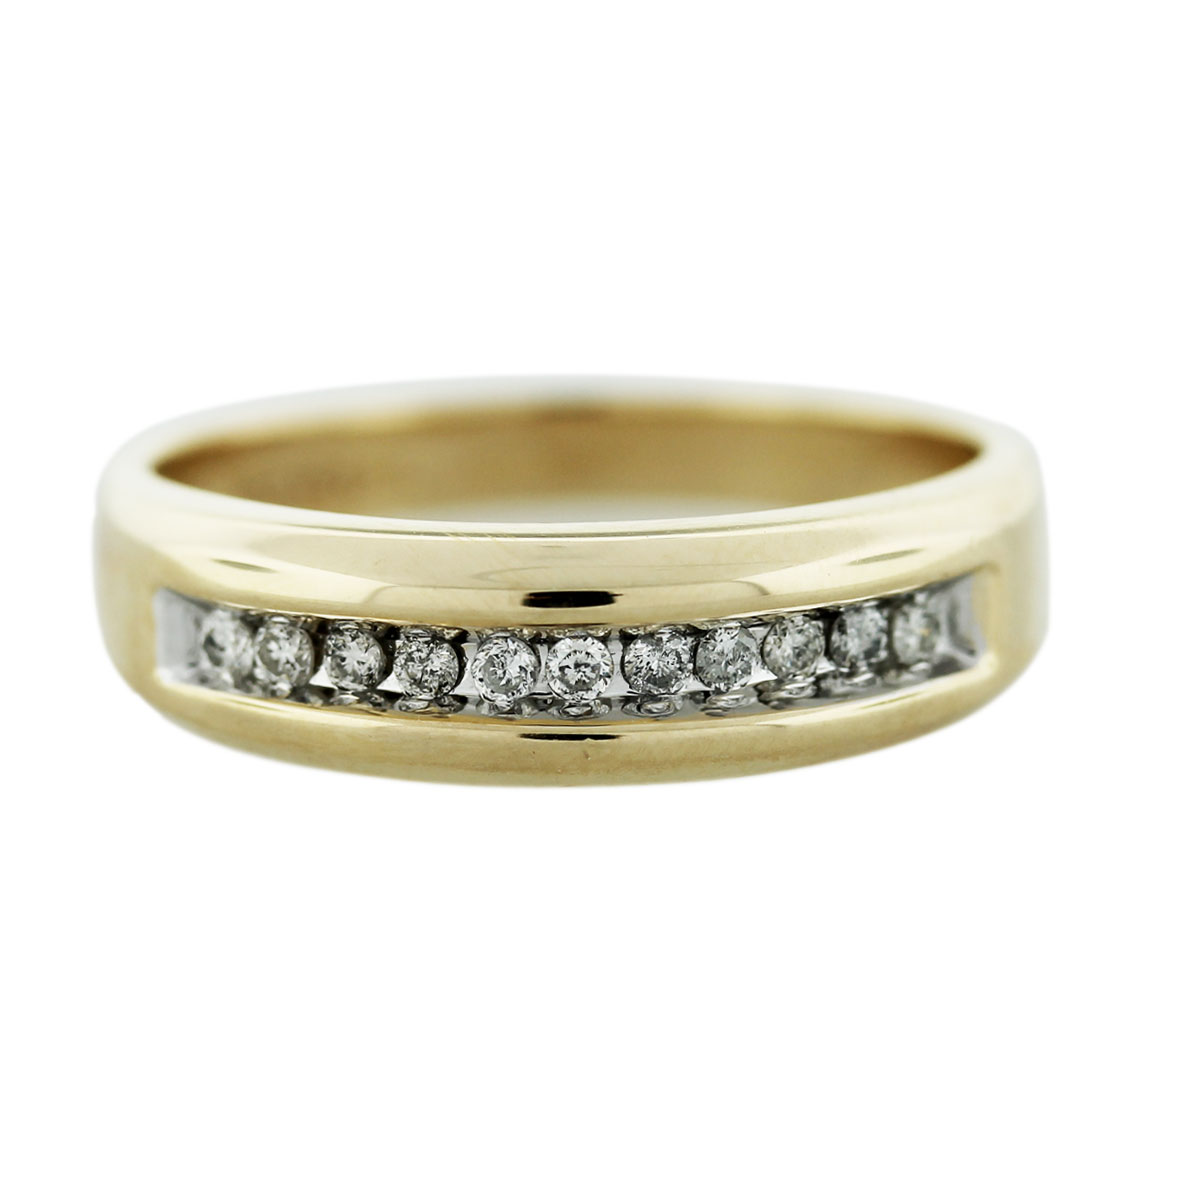 gold diamond mens wedding band ring With 10k gold mens wedding ring